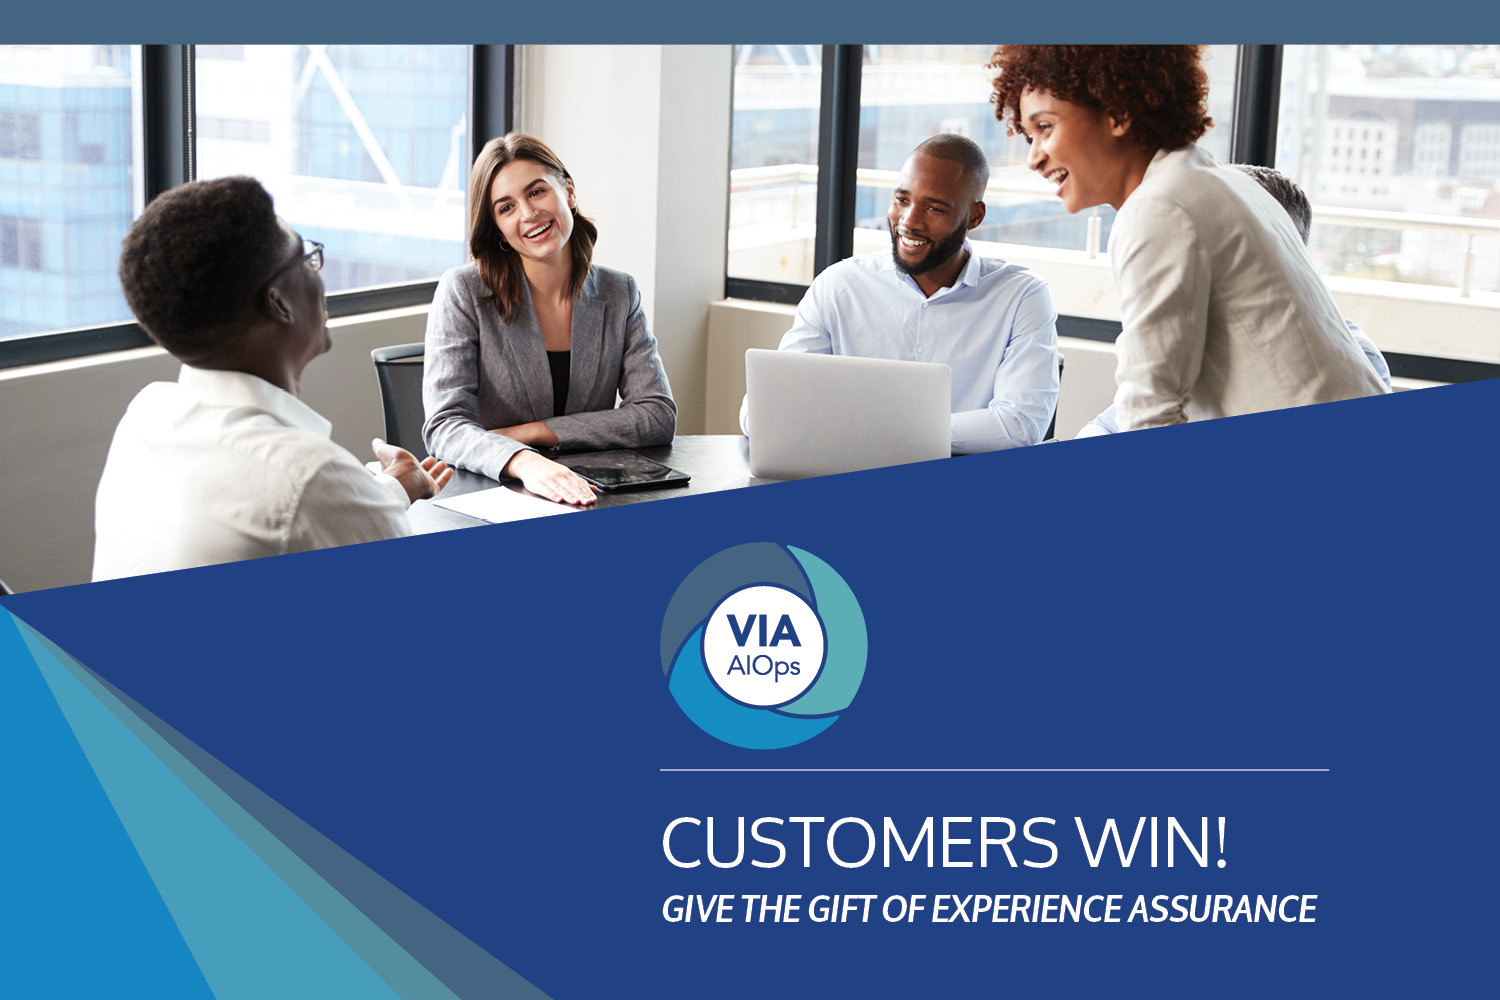 Download the Ebook: Customers Win! Service Oriented AIOps